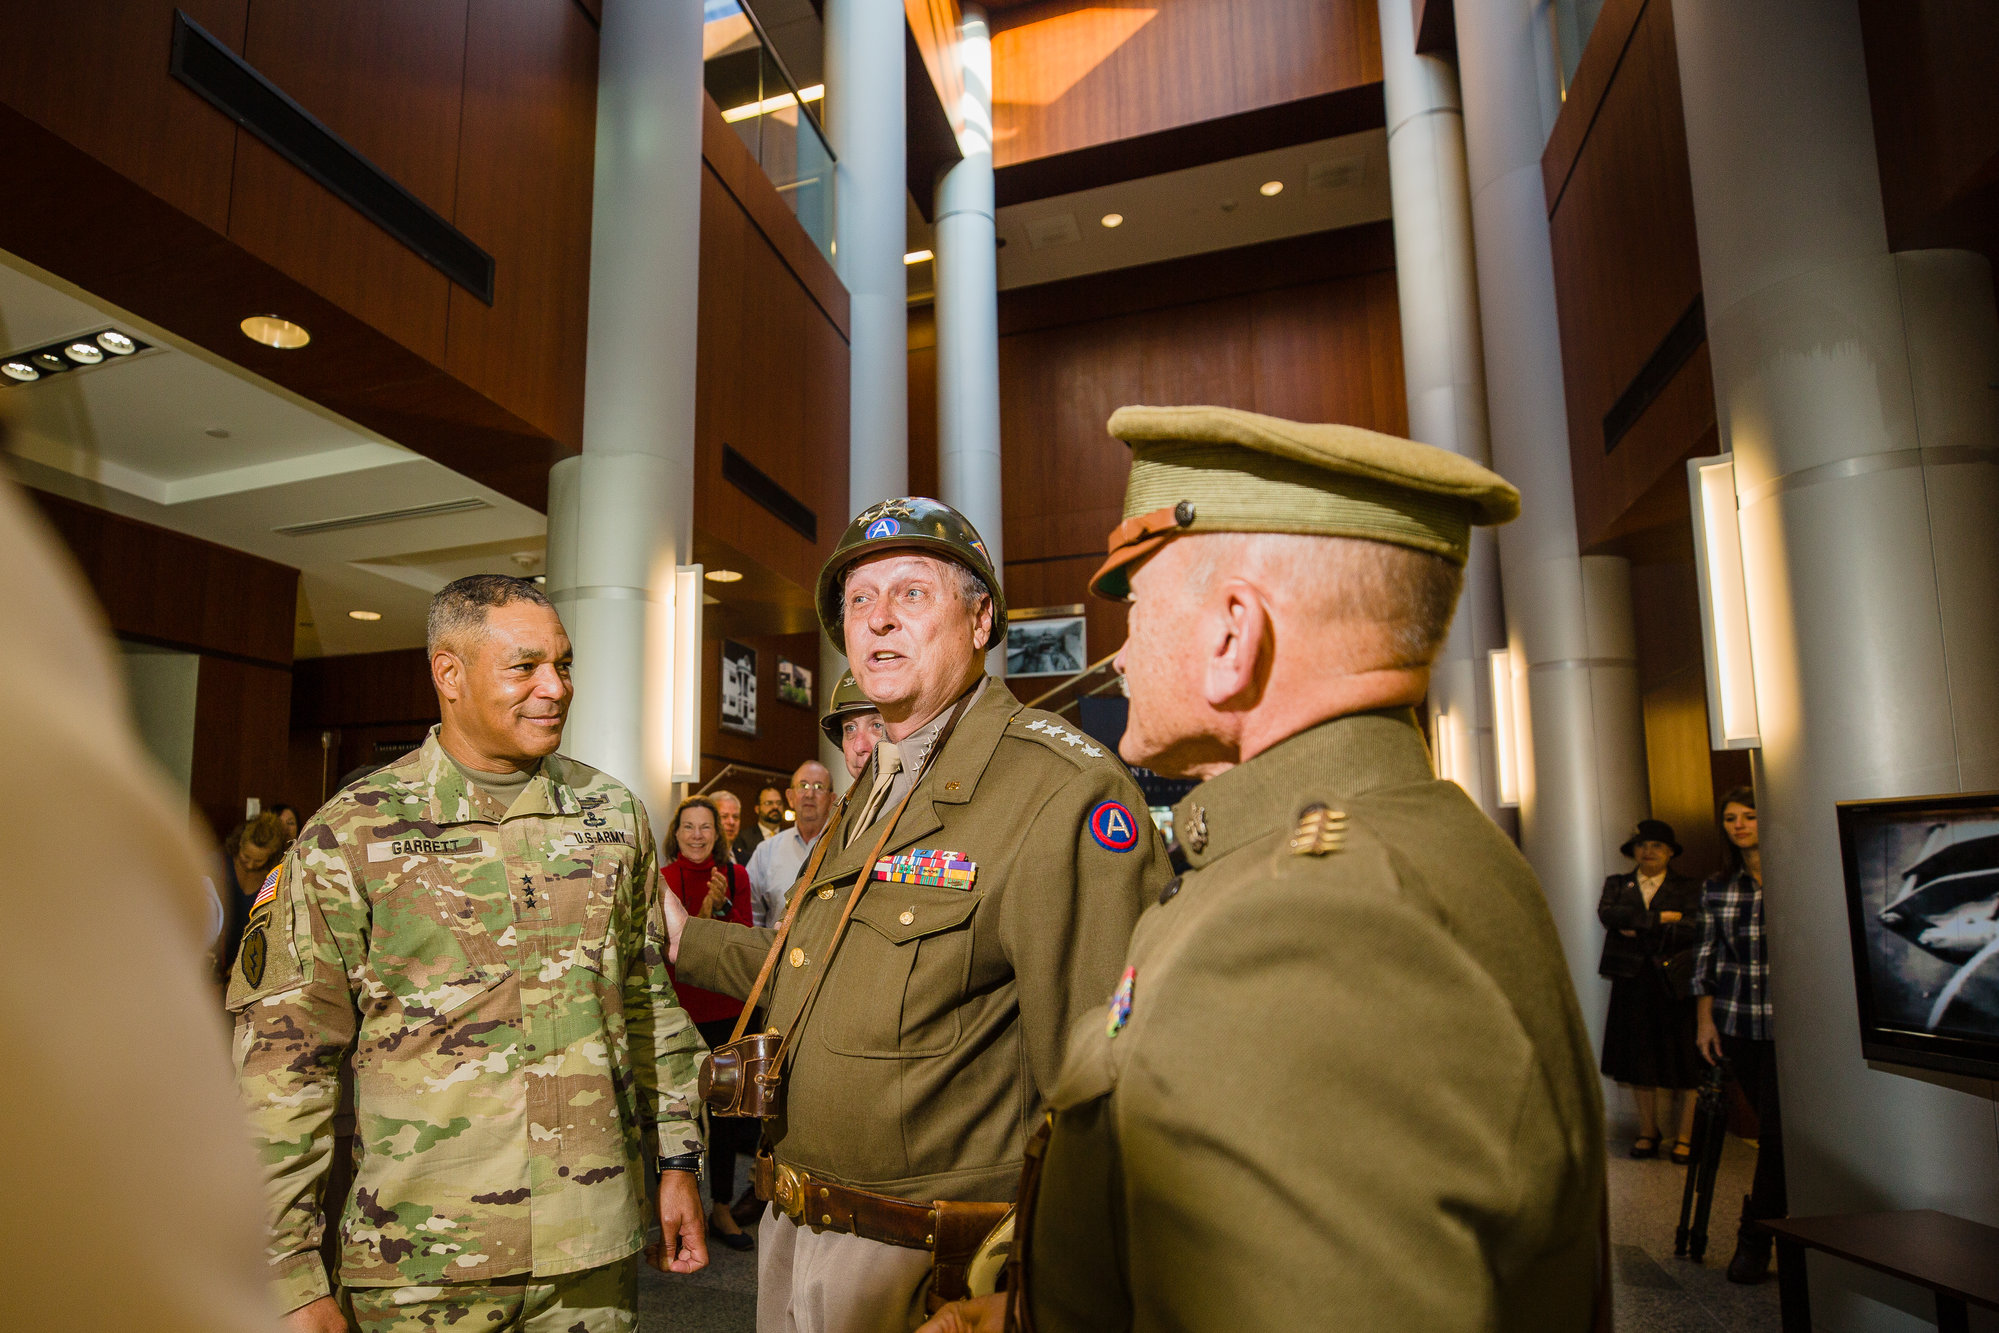 Lt. Gen. Michael X. Garrett, U.S. Army Central commanding general, laughs with Gen. George S. Patton Jr., portrayed by living historian Denny G. Hair, before touring ARCENT's Headquarters at Shaw Air Force Base on Wednesday in celebration of Third Army's 100th birthday.